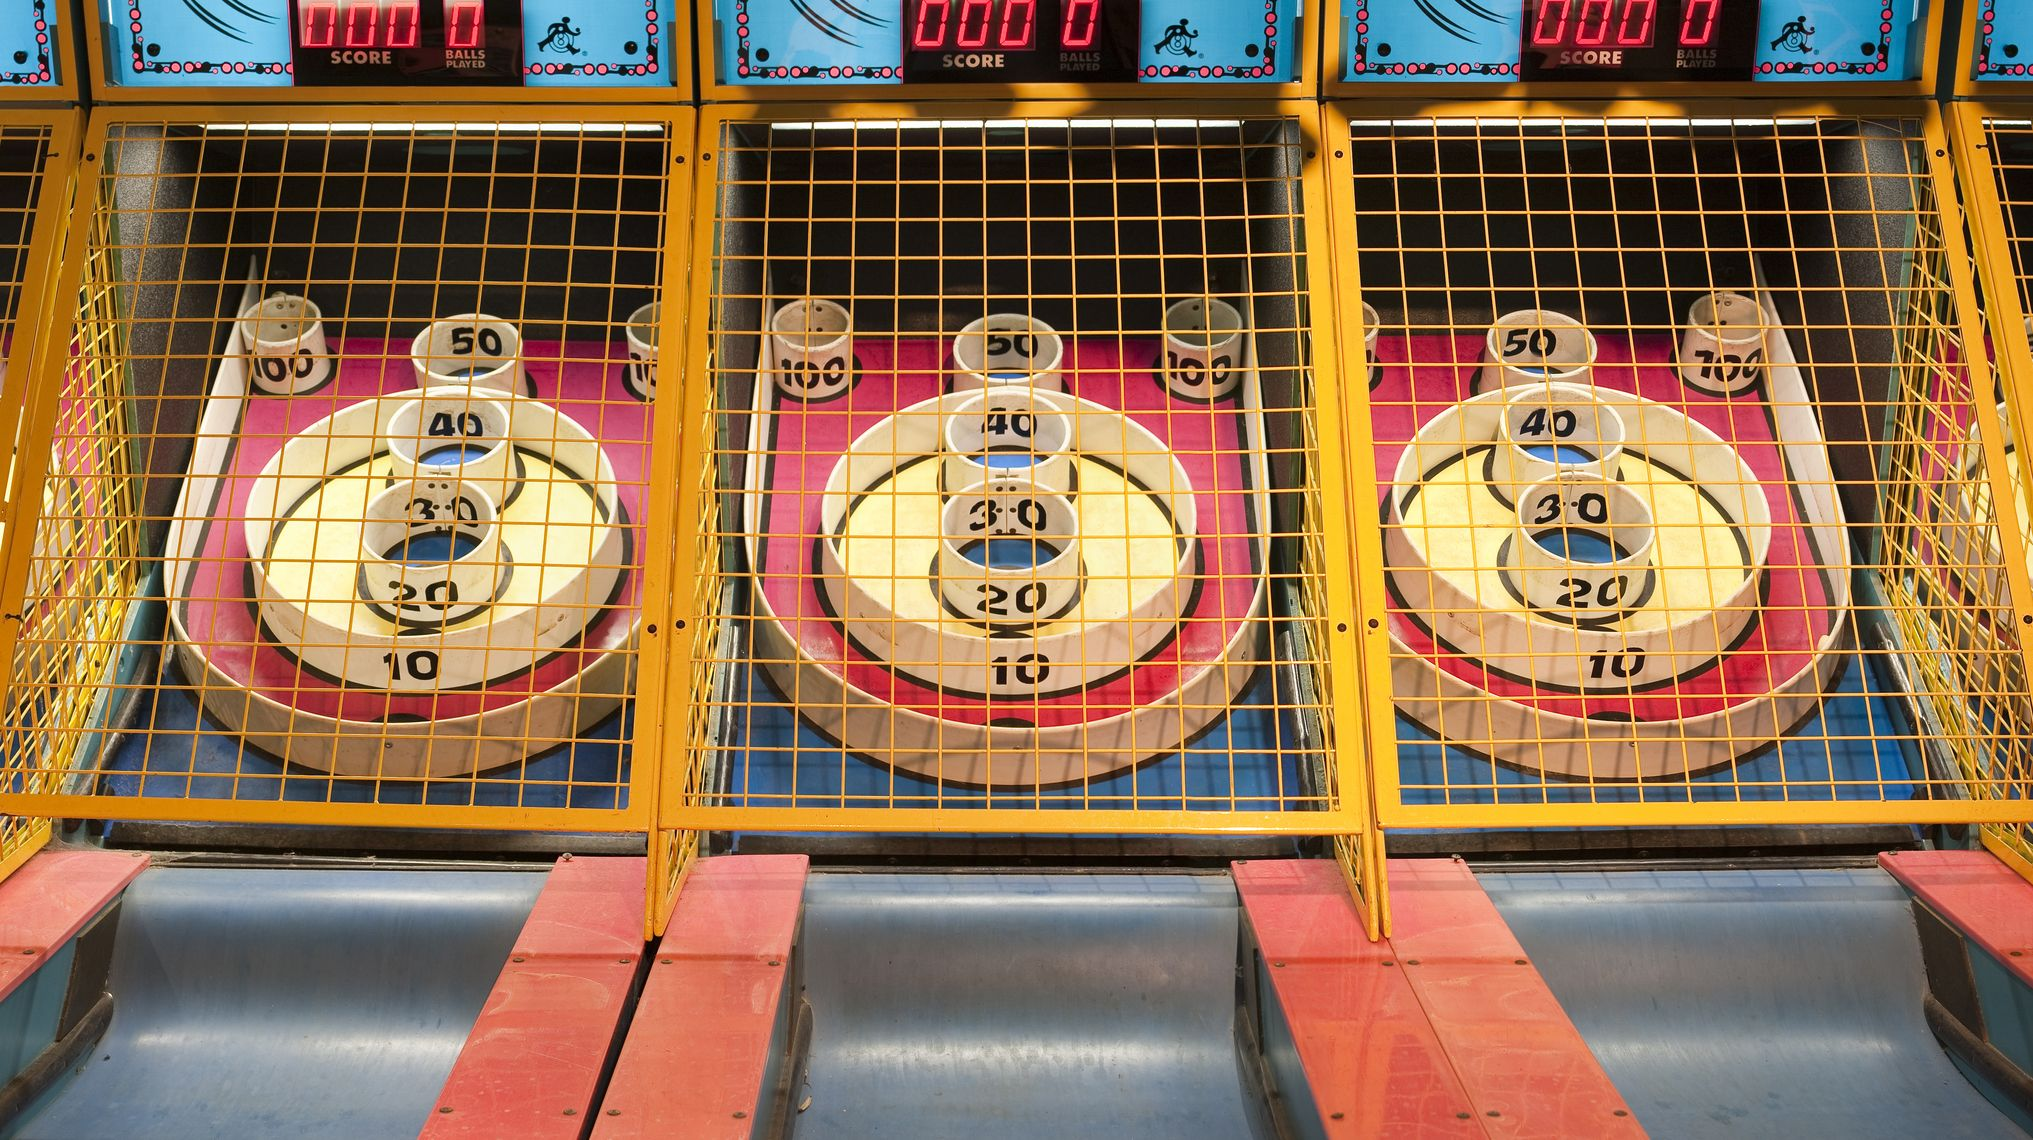 7 Pro Tips for How to Improve Your Skee-Ball Game